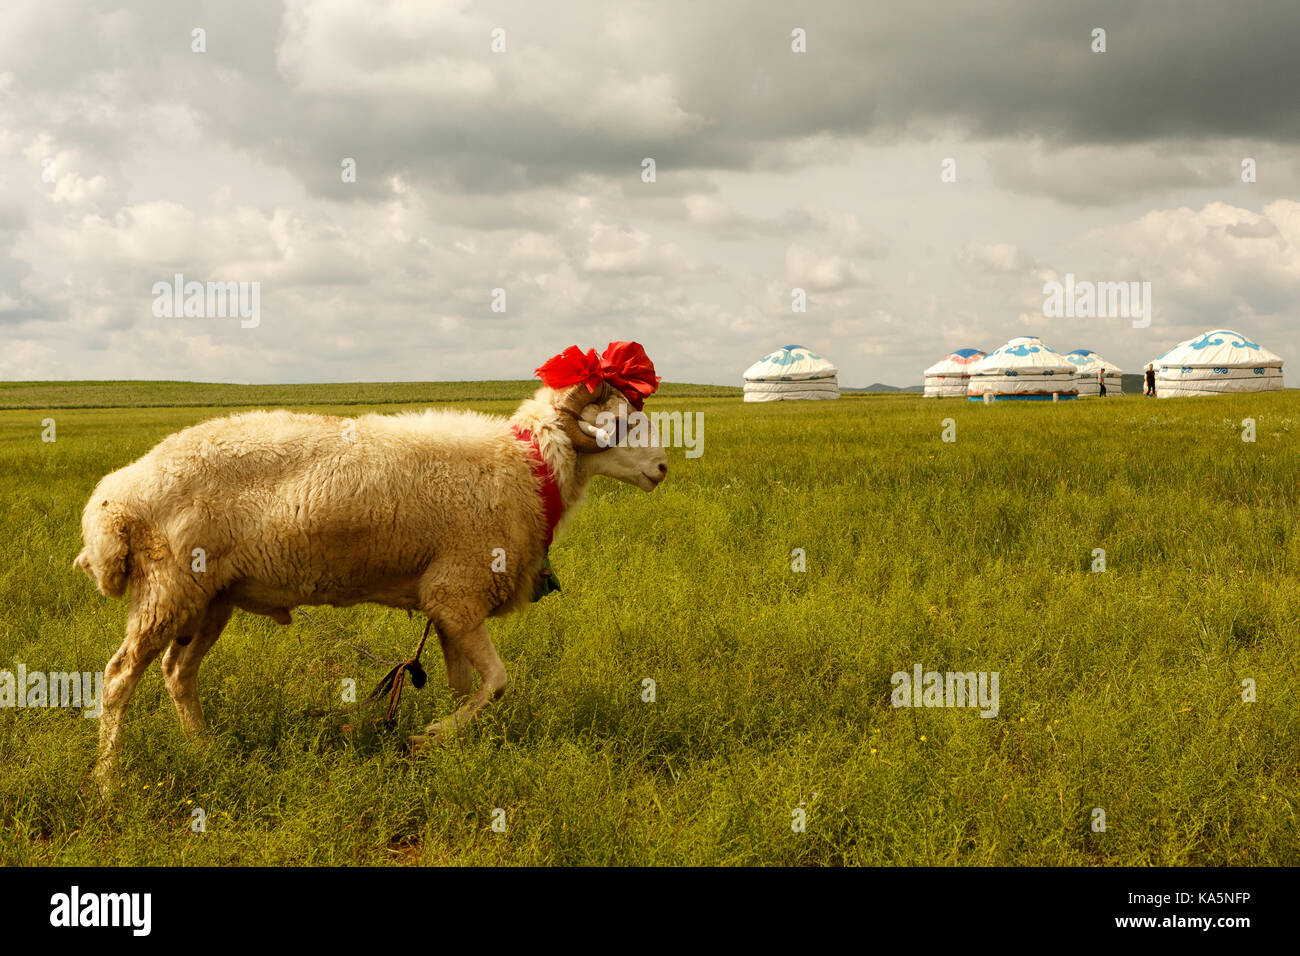 Fancy sheep in Mongolian grasslands - Stock Image